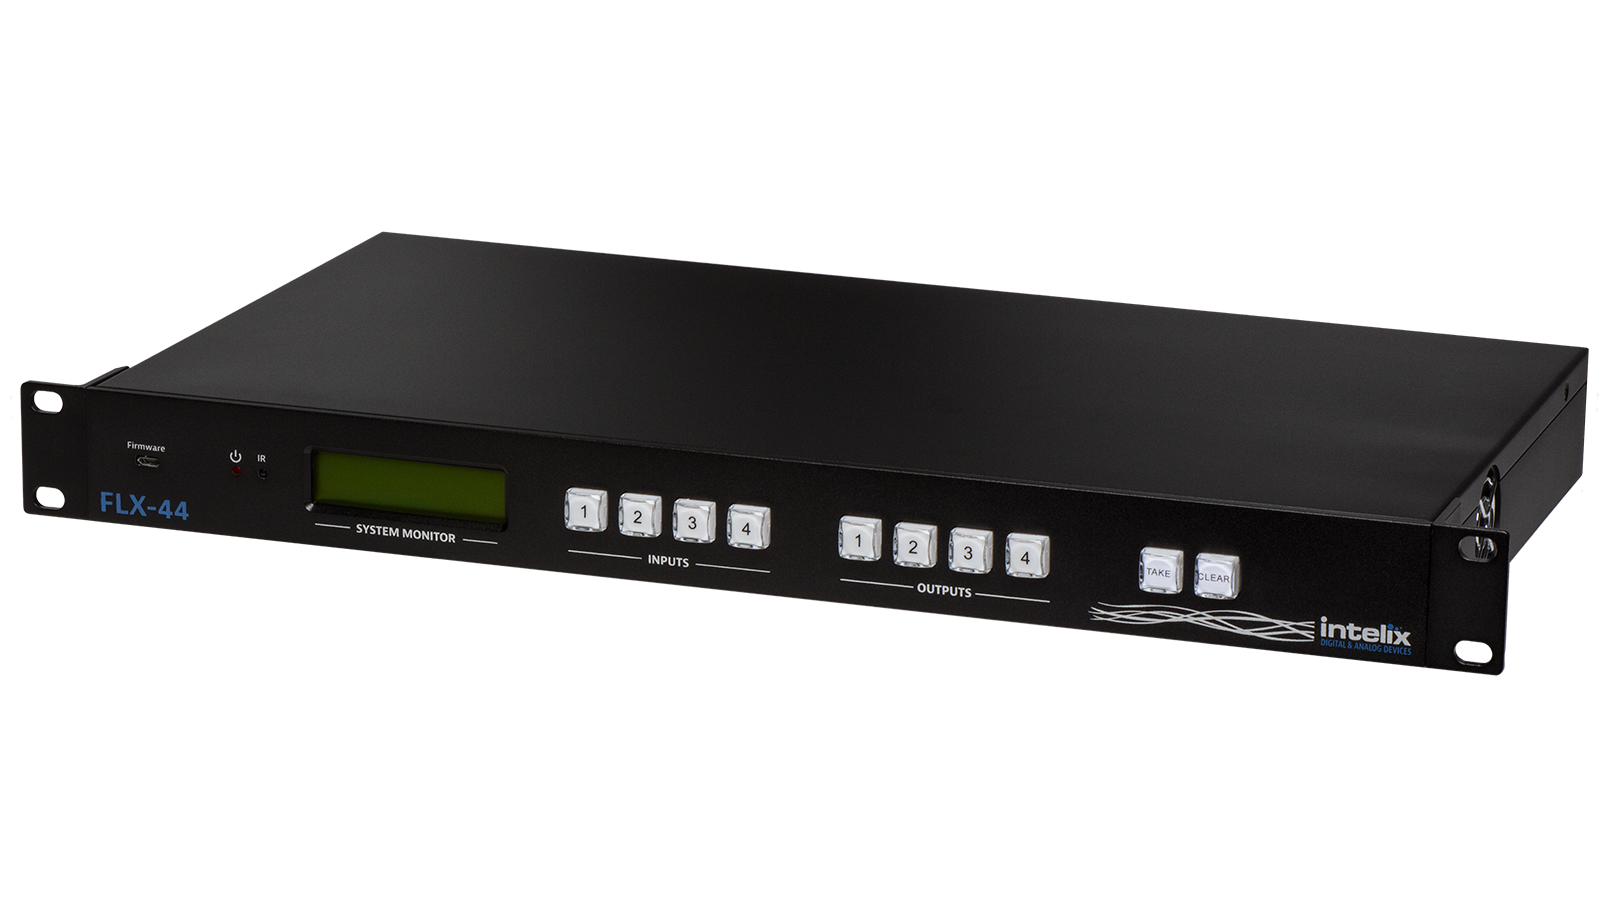 Flx 44 Hdmi Hdbaset Matrix Switcher 4 Input X 4 Output